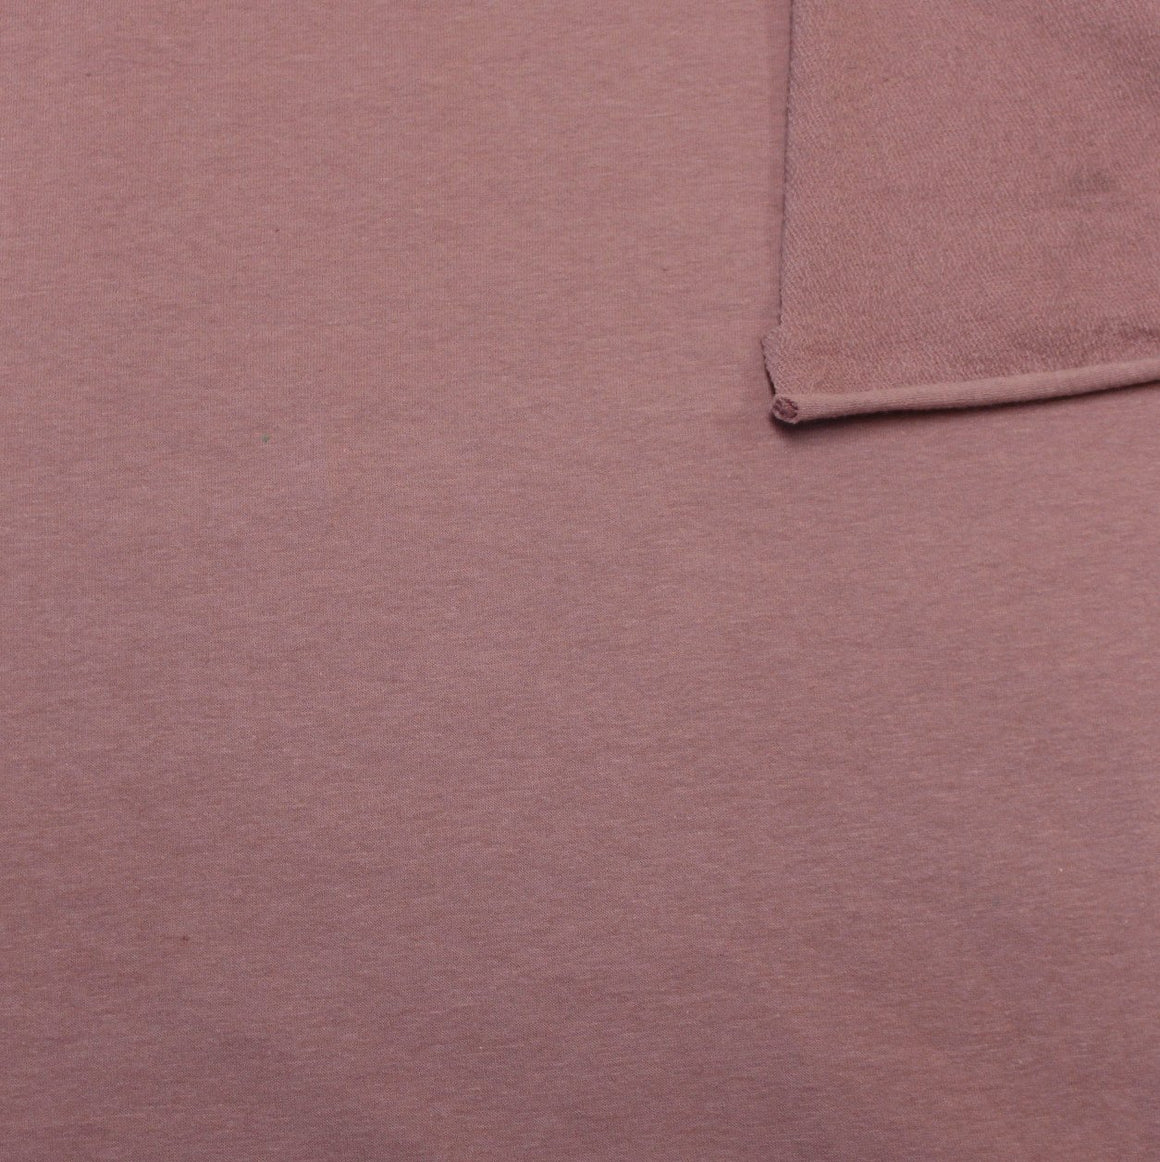 Solid New Mauve 4 Way Stretch French Terry Knit Fabric With Spandex, 1 Yard PRE-ORDER - Raspberry Creek Fabrics